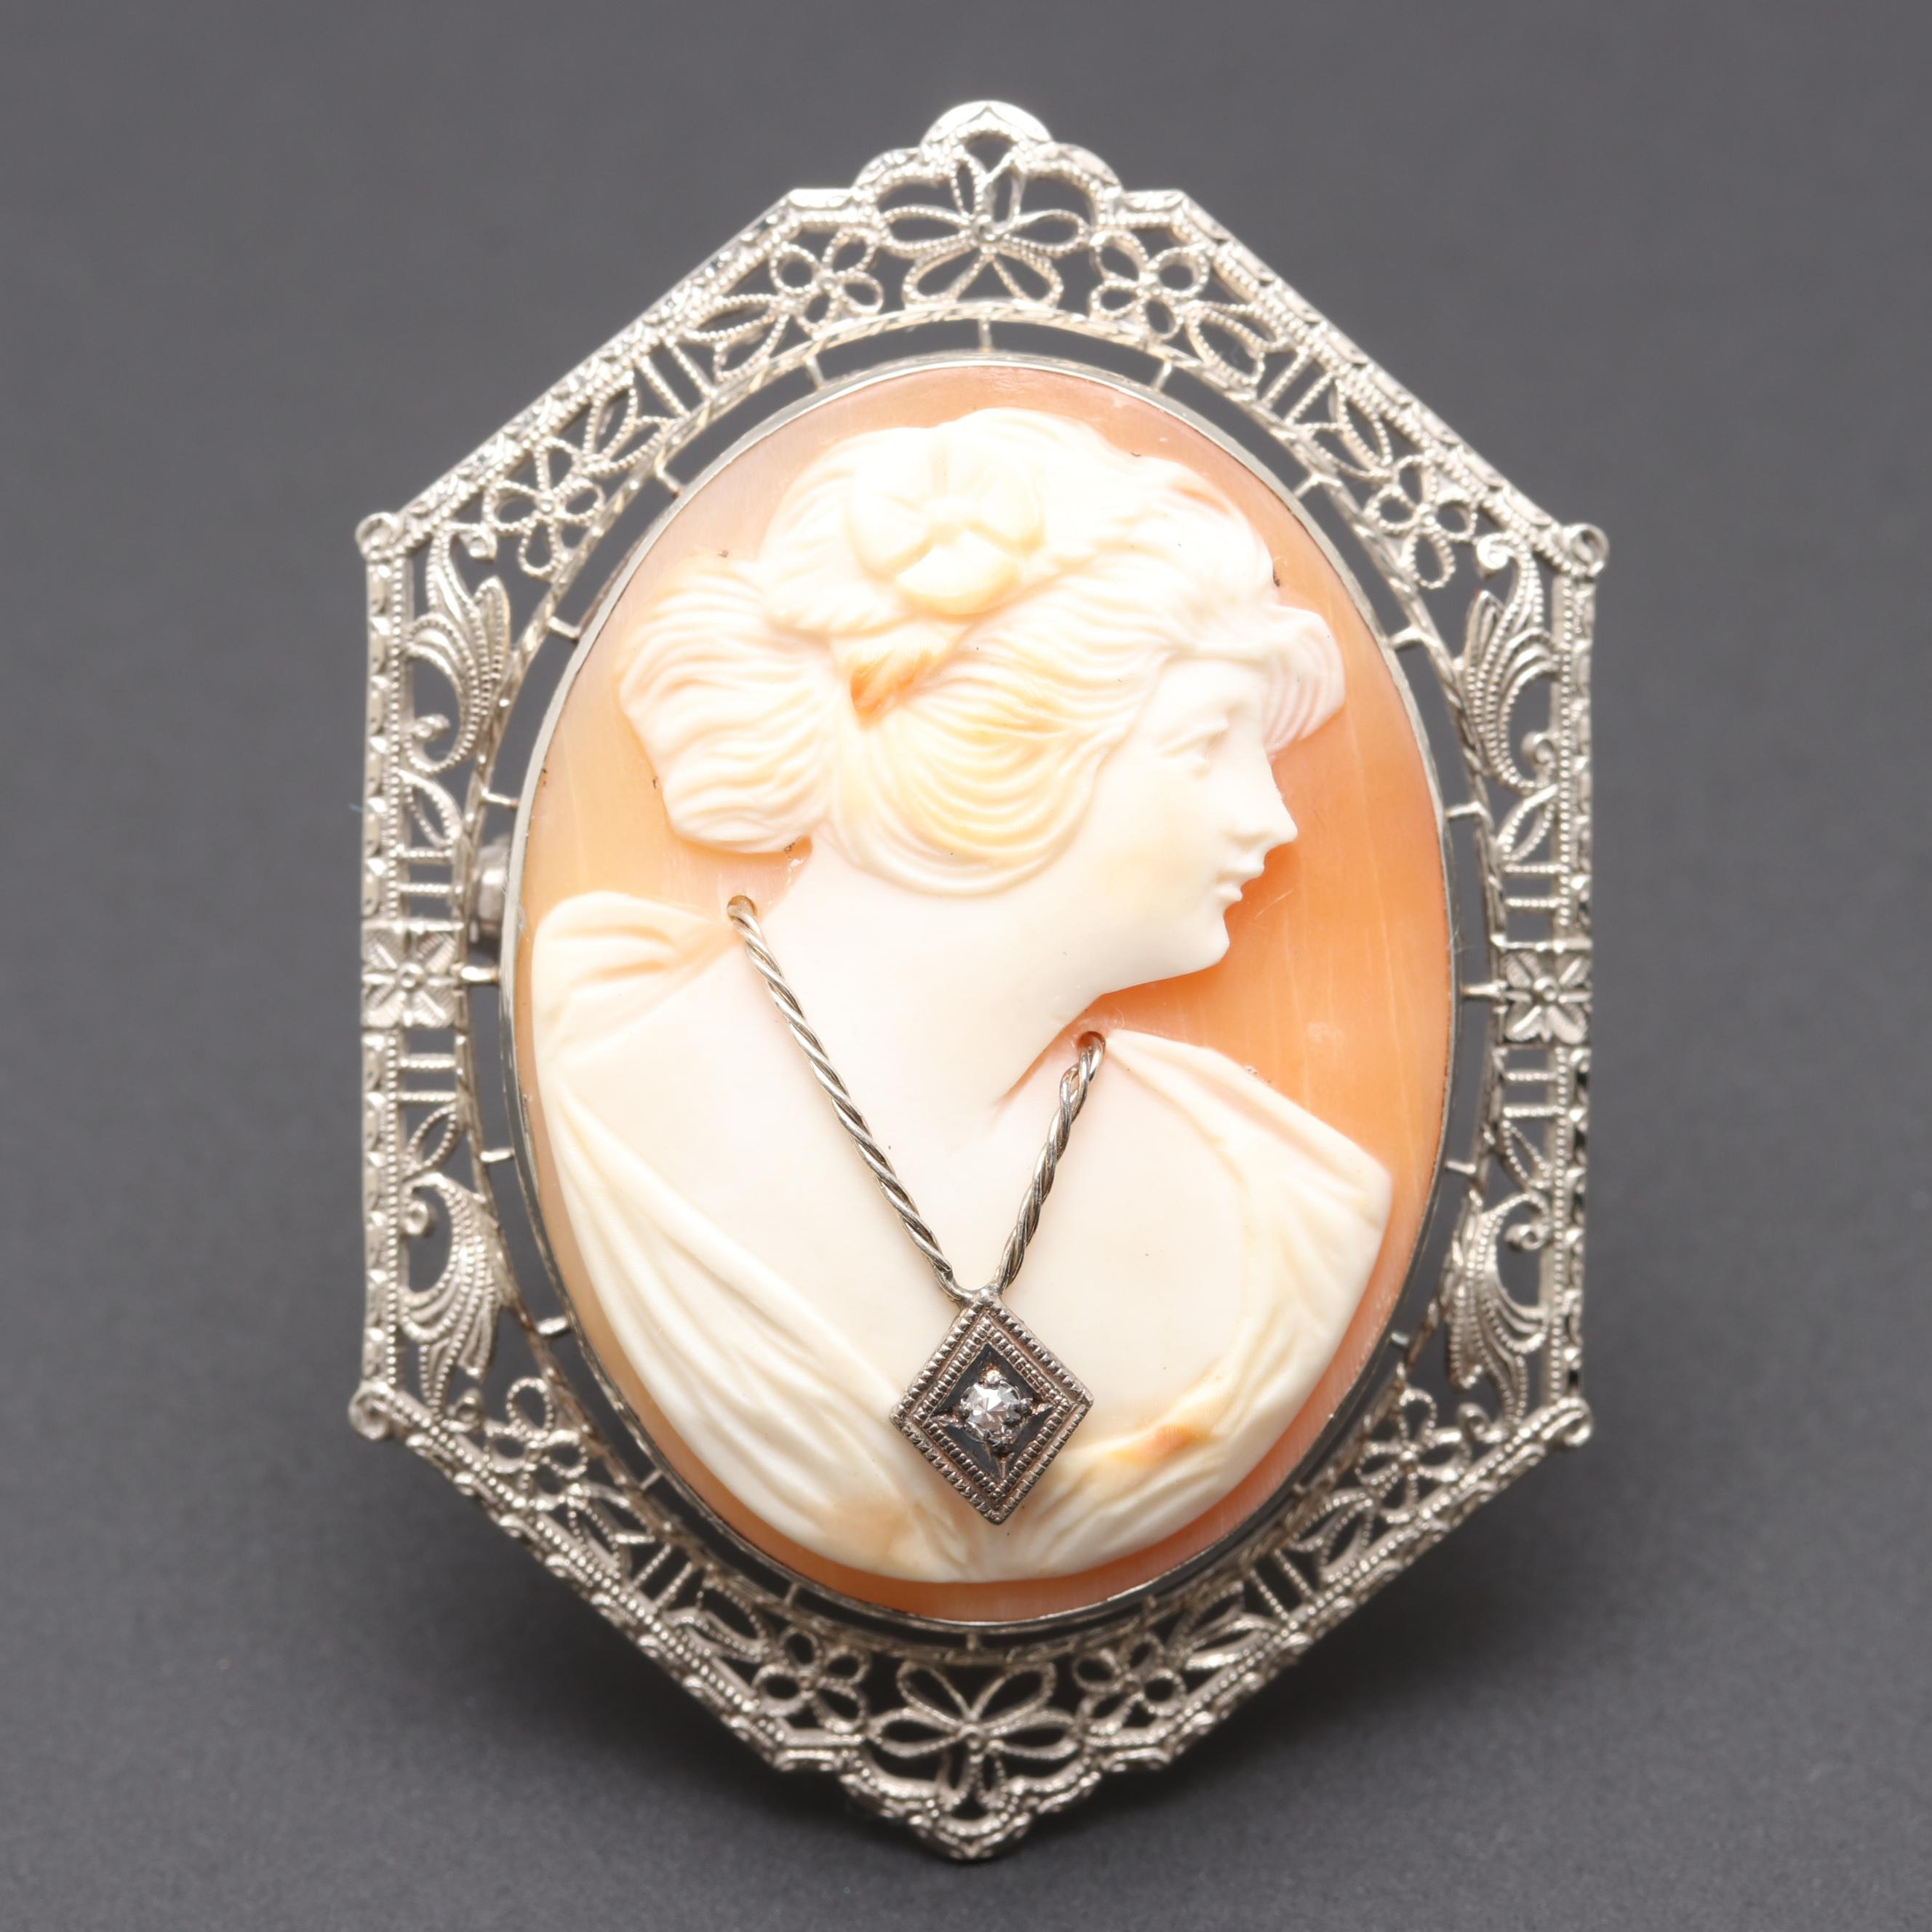 Edwardian 10K White Gold Shell and Diamond Habille Cameo Brooch